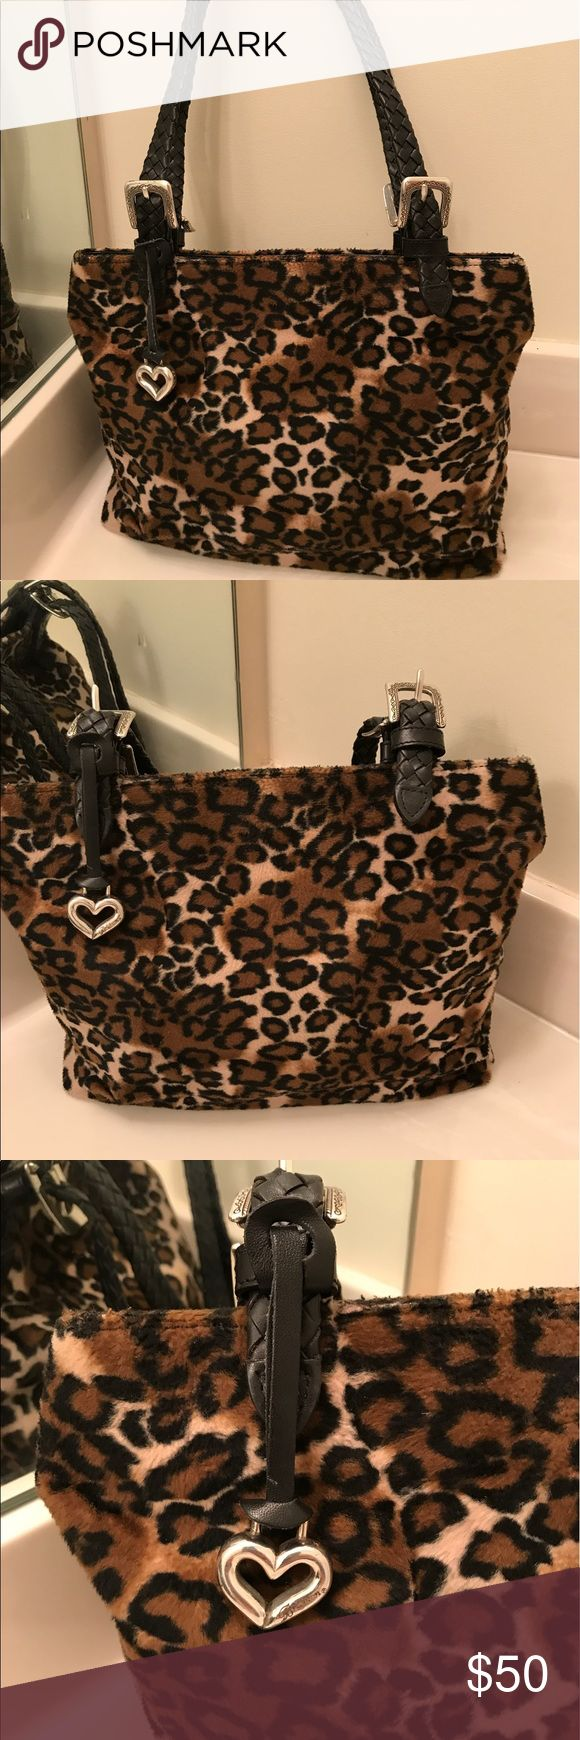 Brighton Animal Print Black/Brown Shoulder Bag Brighton Animal Print Black/Brown Shoulder Bag. Gorgeous animal print Brighton Handbag is roomy and stylish for any occasion. GUC. 🚫🚫Trades, paypal, any questions in the comments regarding price please use the offer button or they will be ignored🚫🚫 Brighton Bags Shoulder Bags